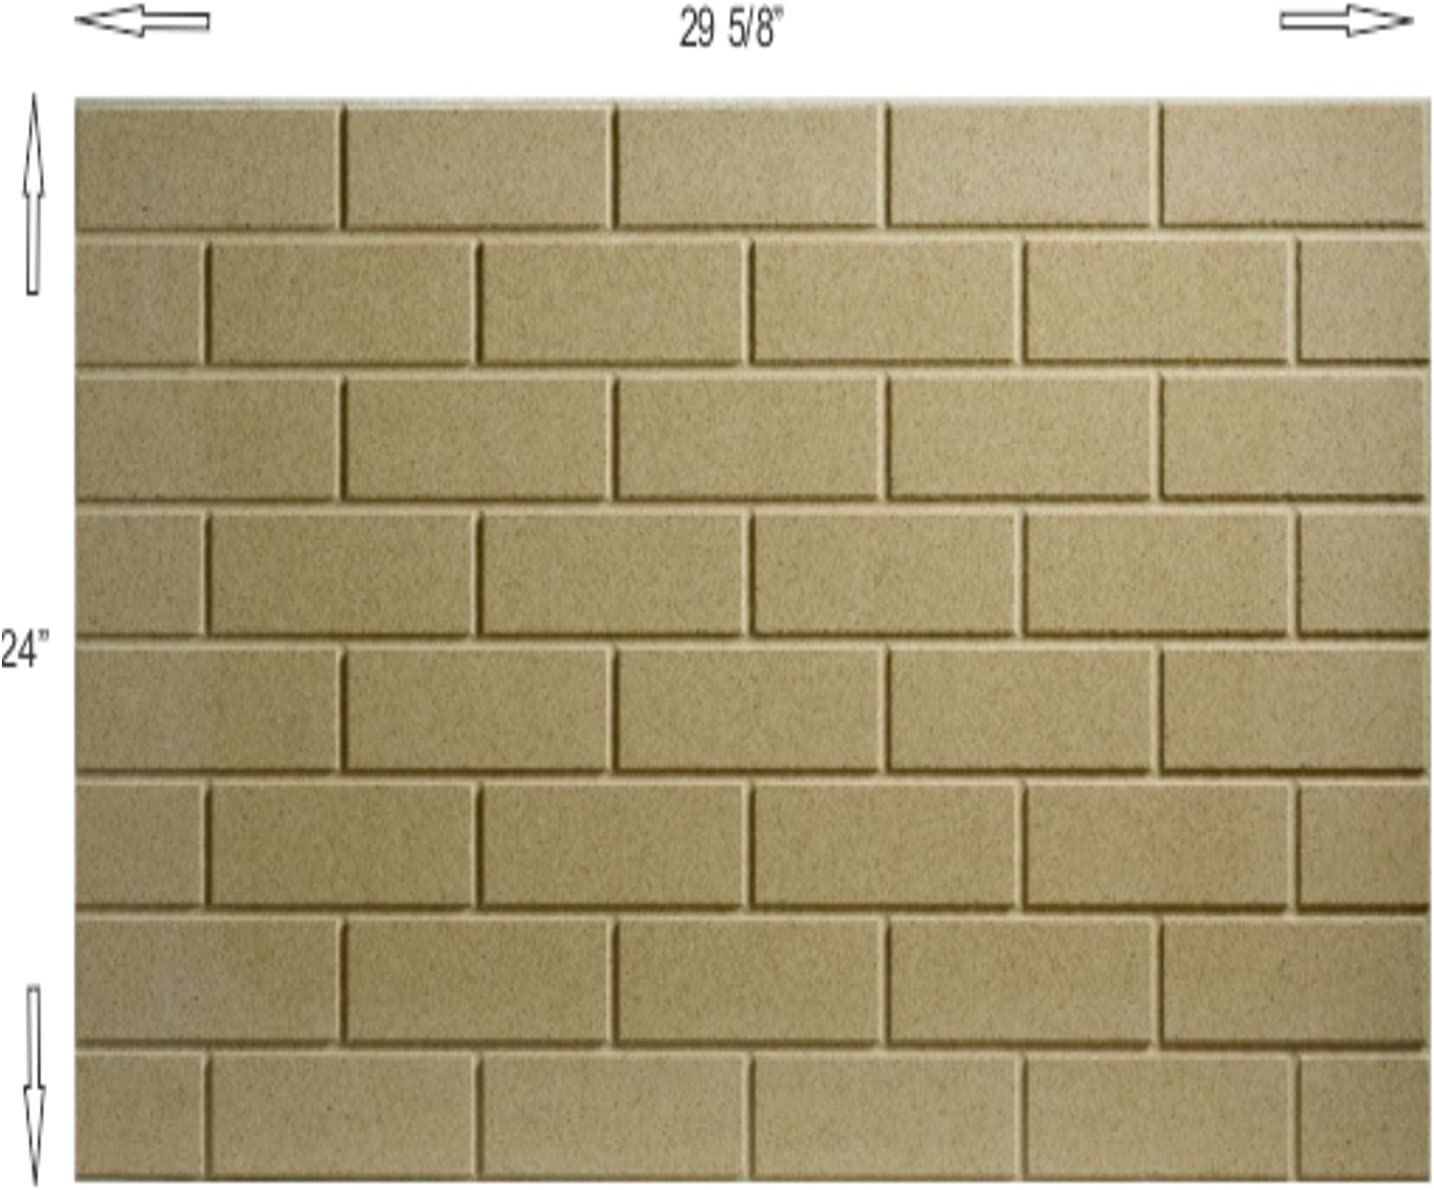 4 x 8 Brick Pattern Thermax Vermiculite Refractory Panel 24 inch X 29 5//8 inch